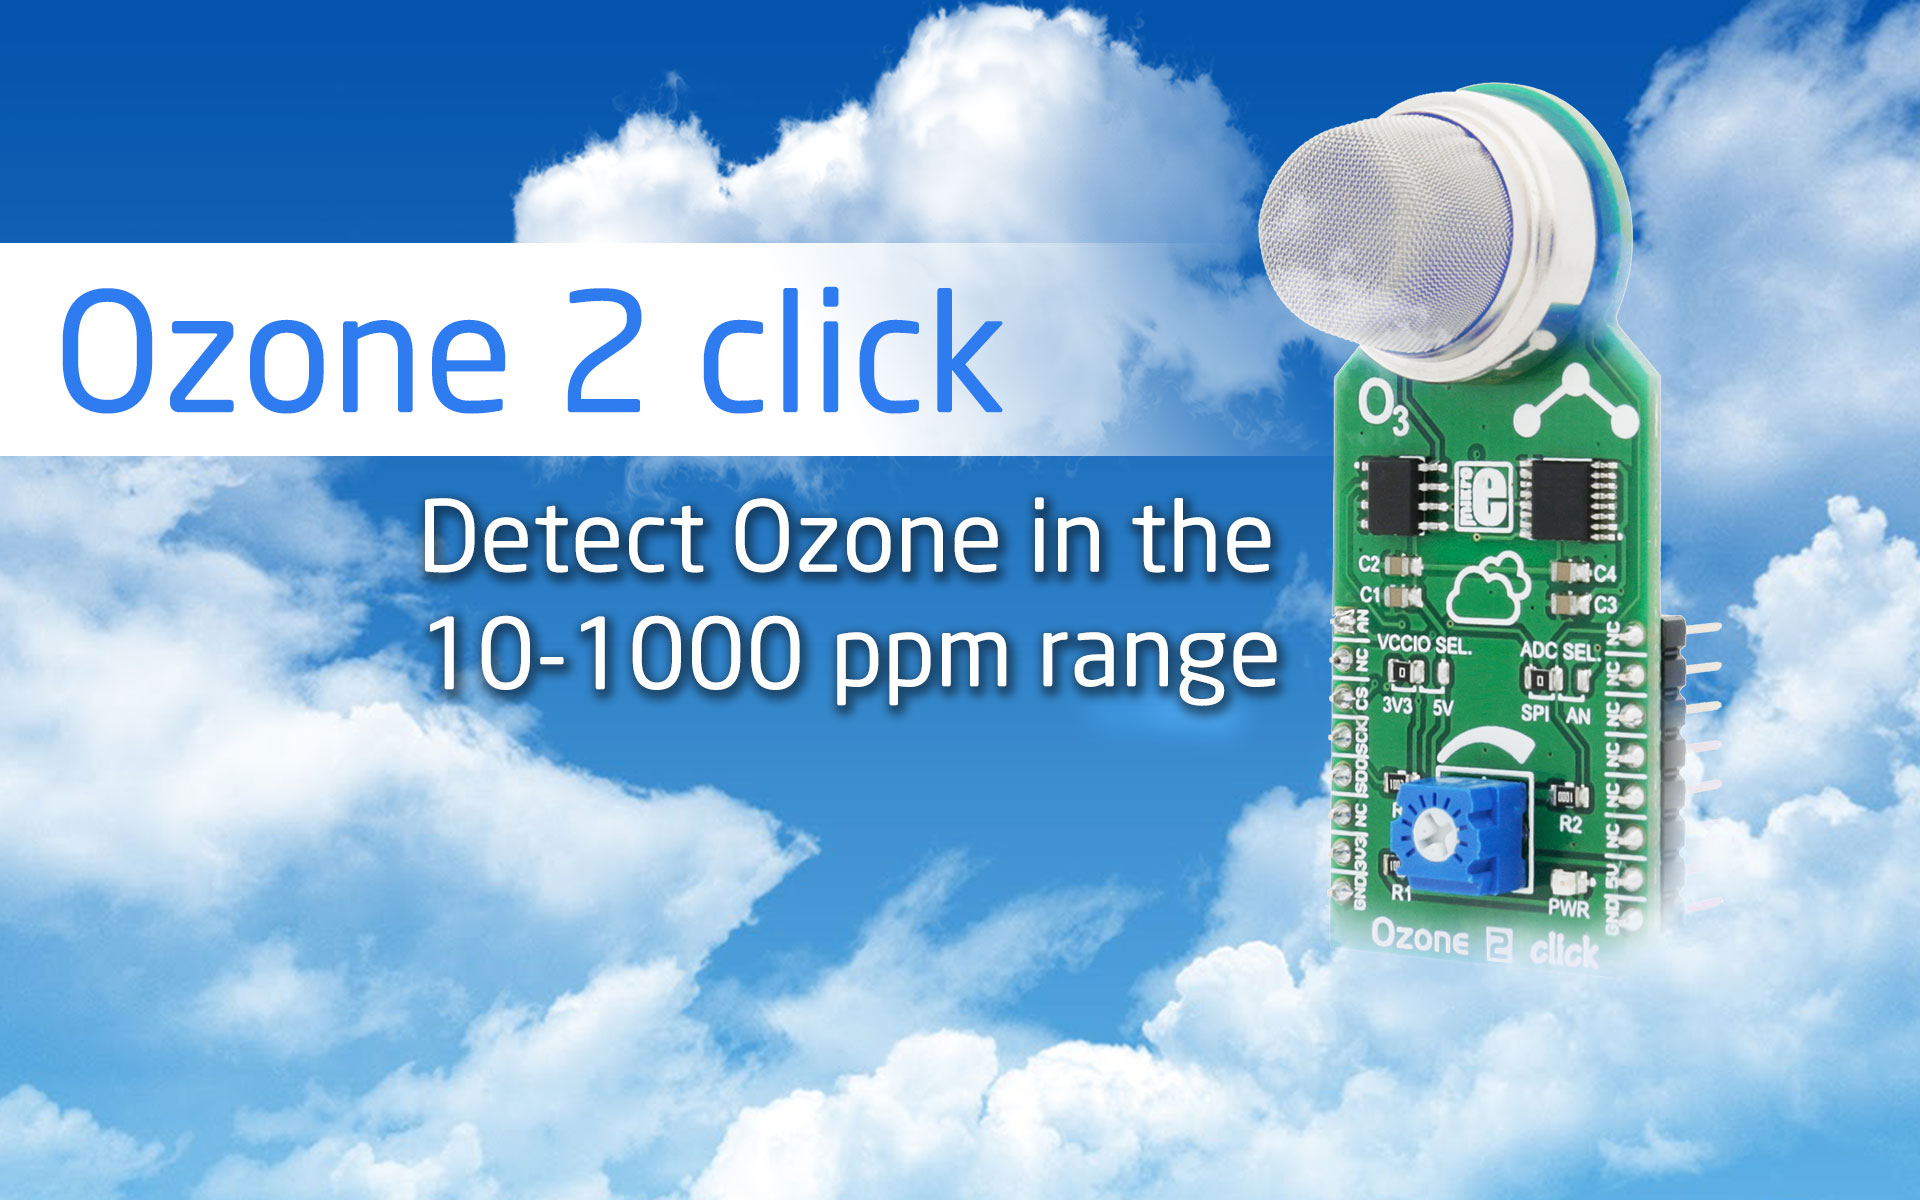 Detect Ozone with our new Ozone 2 click